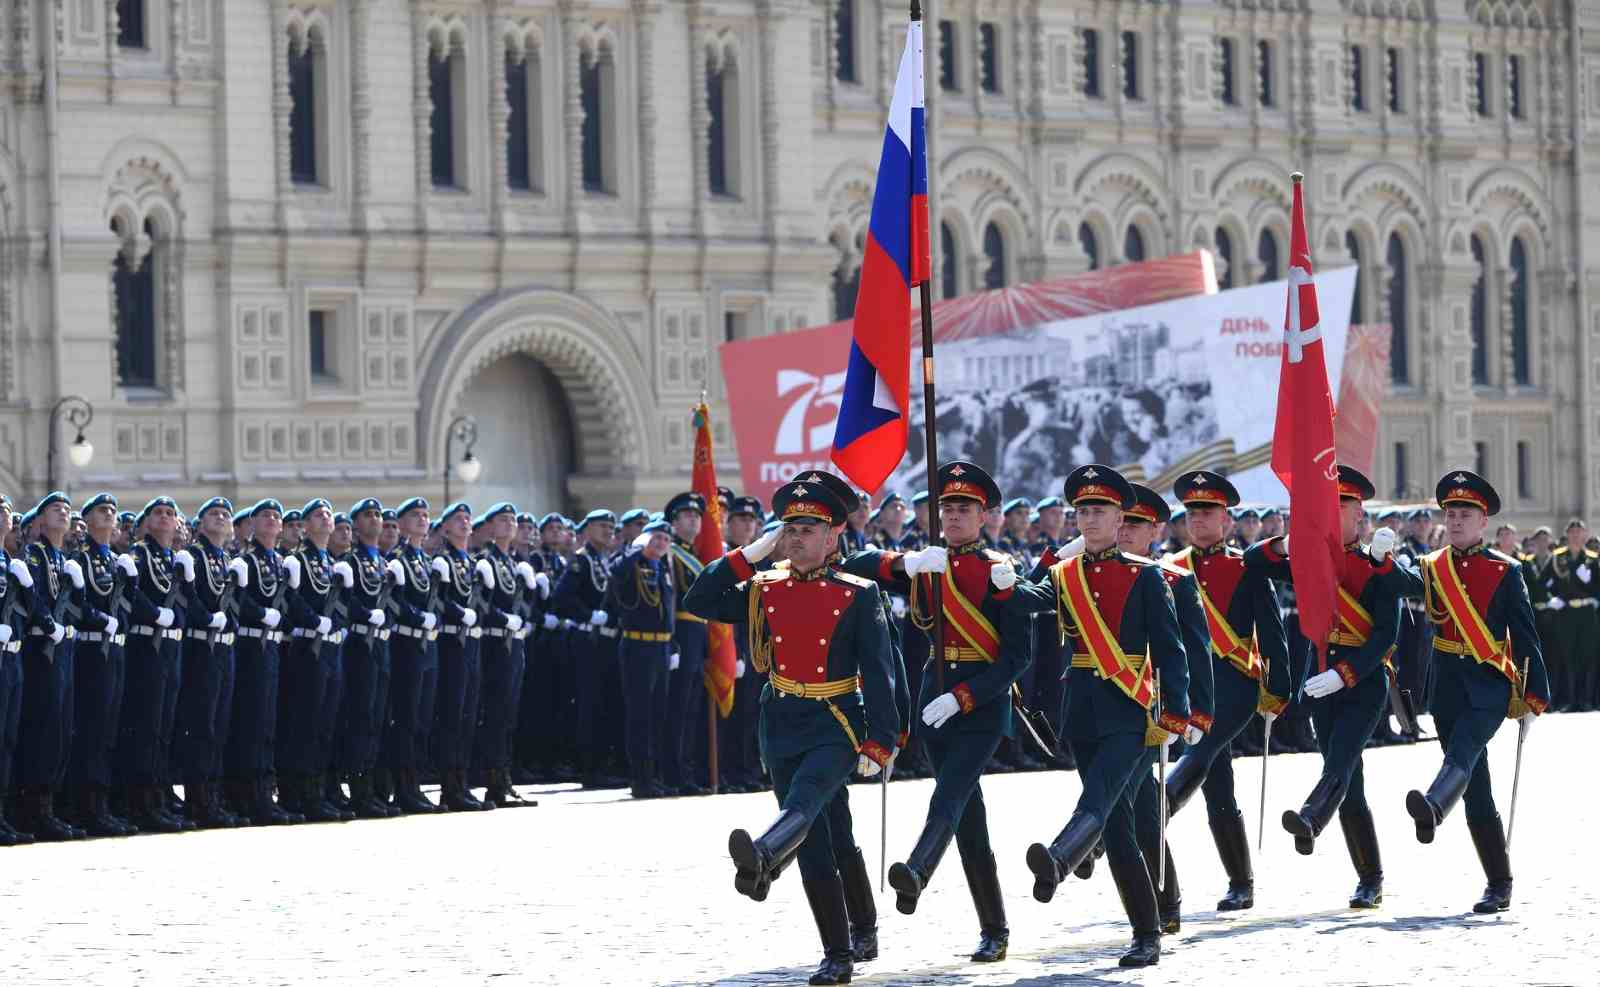 Military parade to mark the 75th anniversary of Victory in the Great Patriotic War